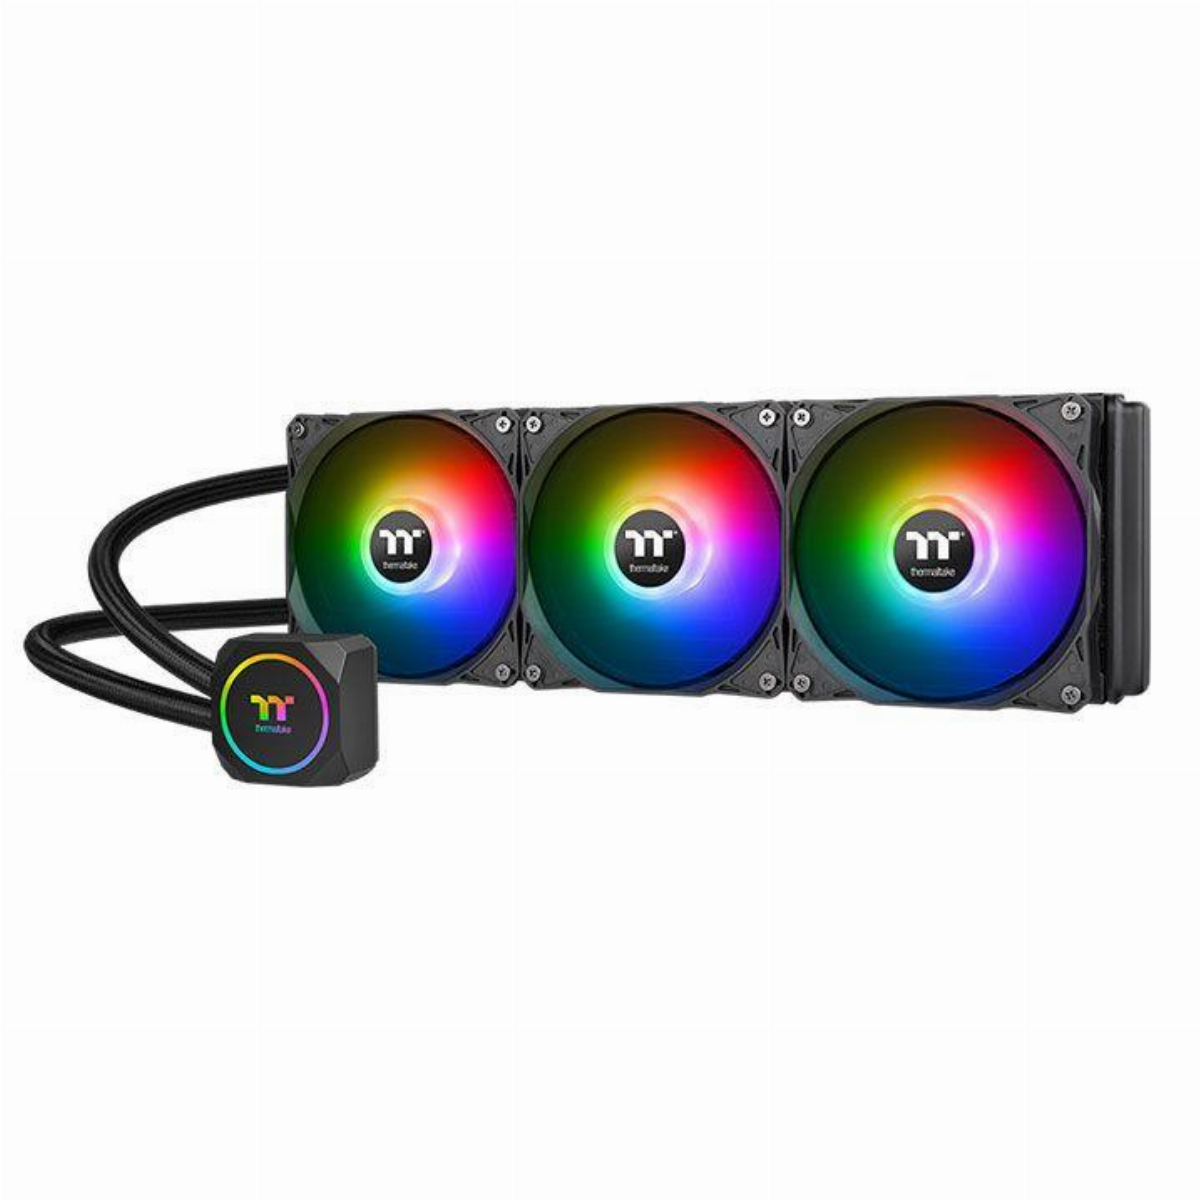 Охладител за процесор Thermaltake TH360 ARGB Sync Intel/AMD